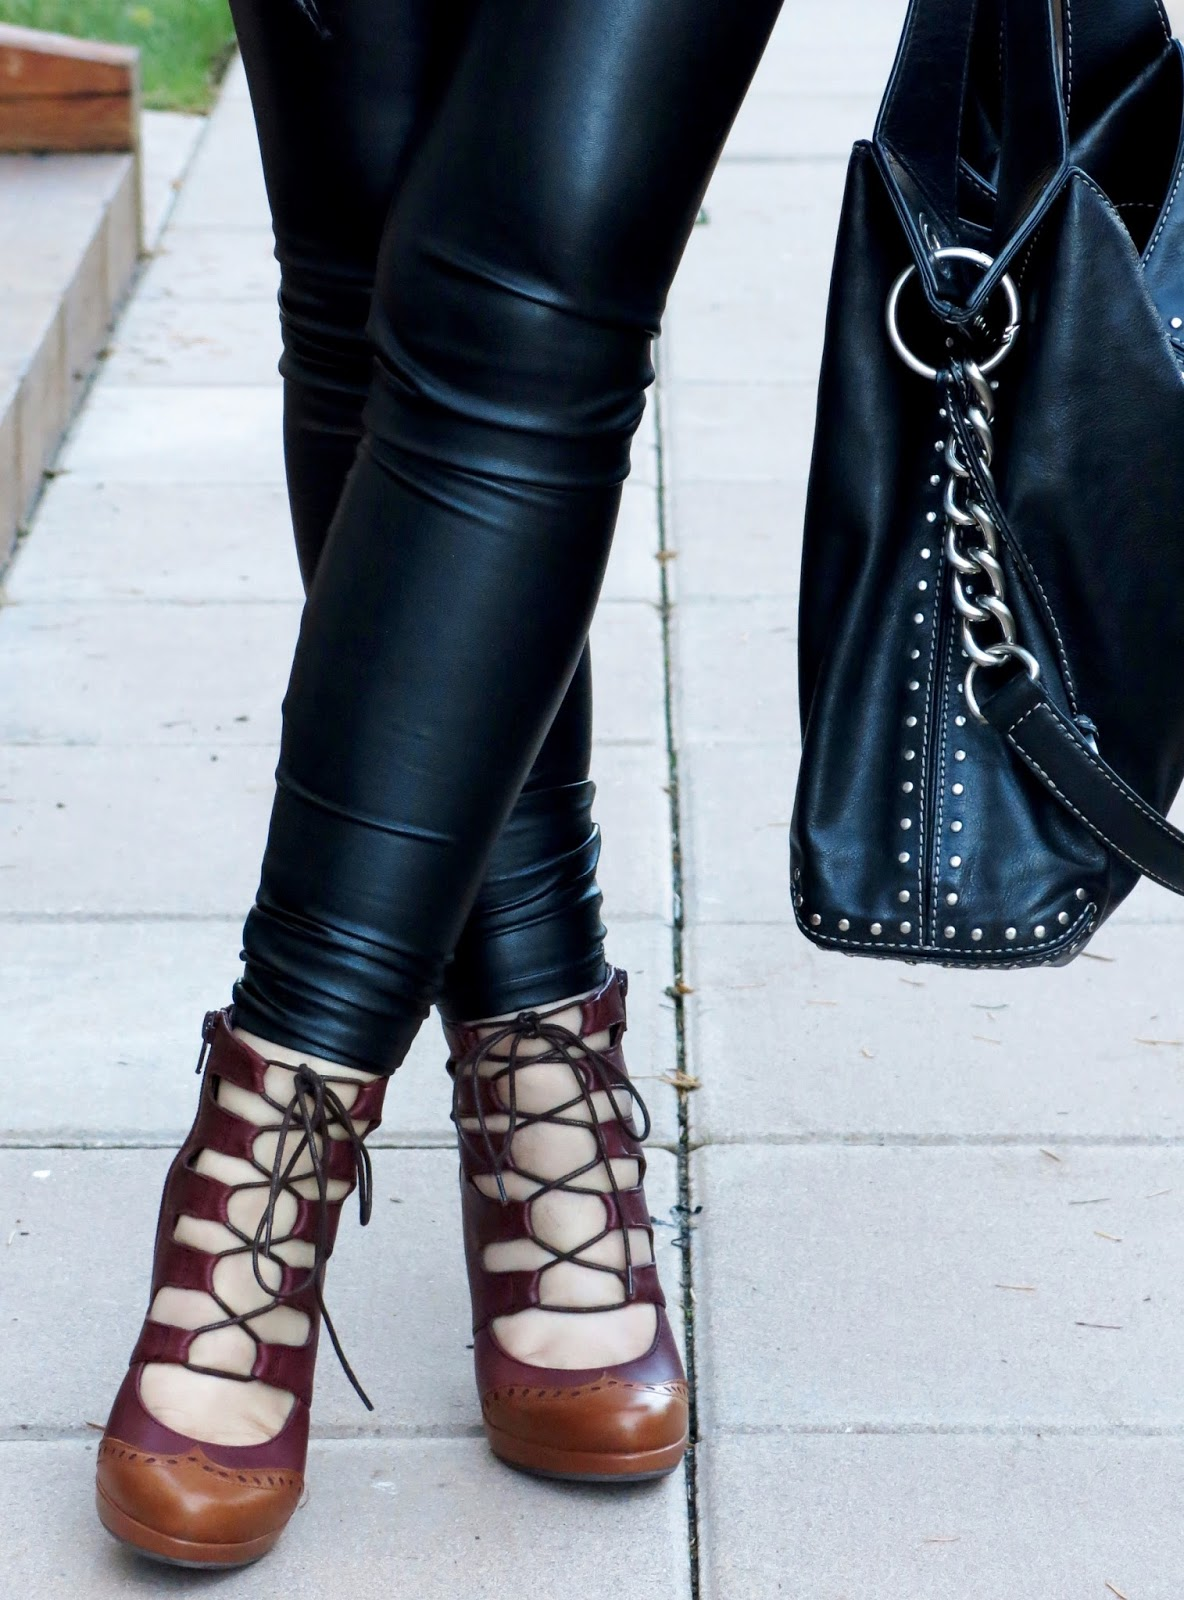 vegan leather leggings, lace-up heels, and Michael Kors bag